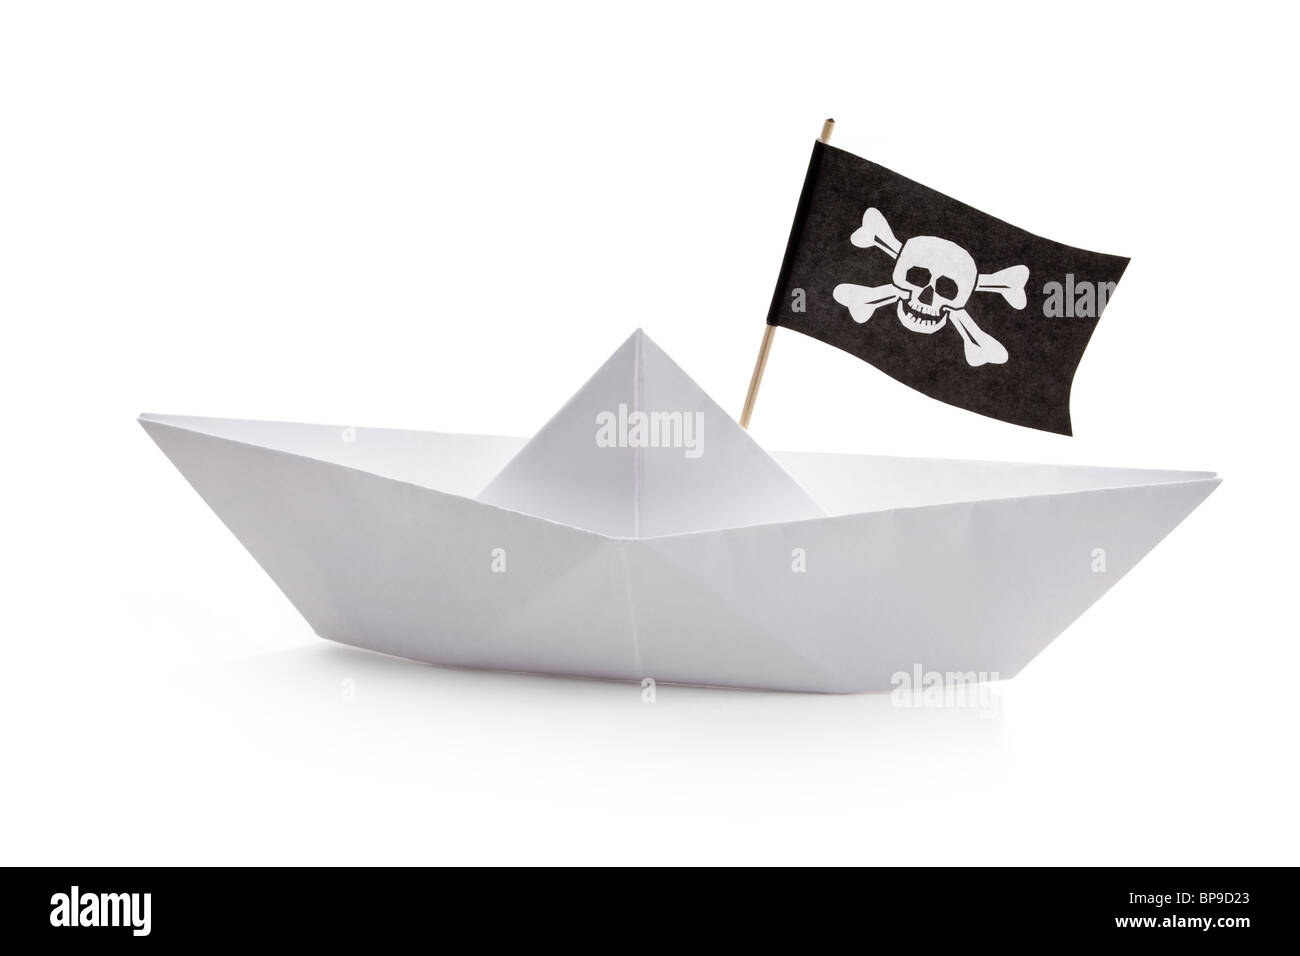 Pirate Ship with white background - Stock Image